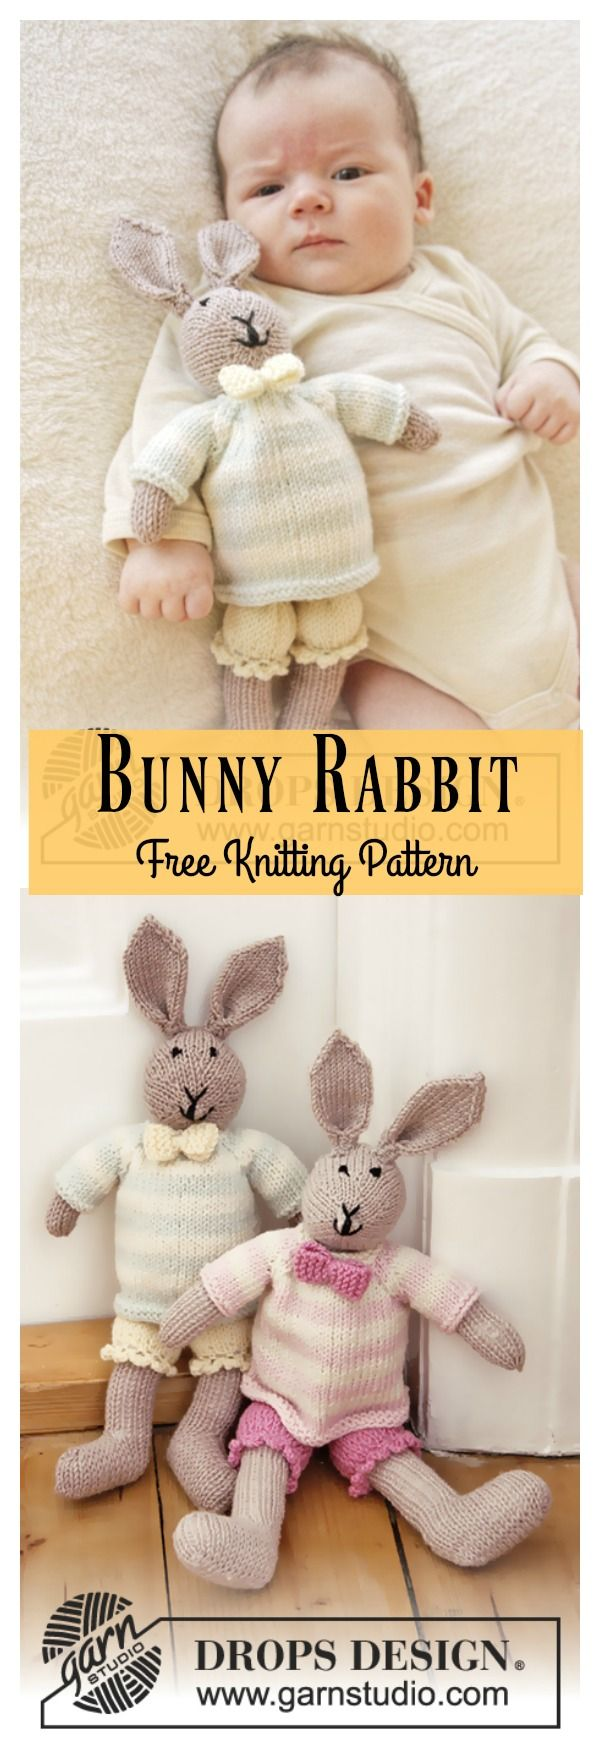 979 best Knitted and Stuffed images on Pinterest | Toy, Knit crochet ...